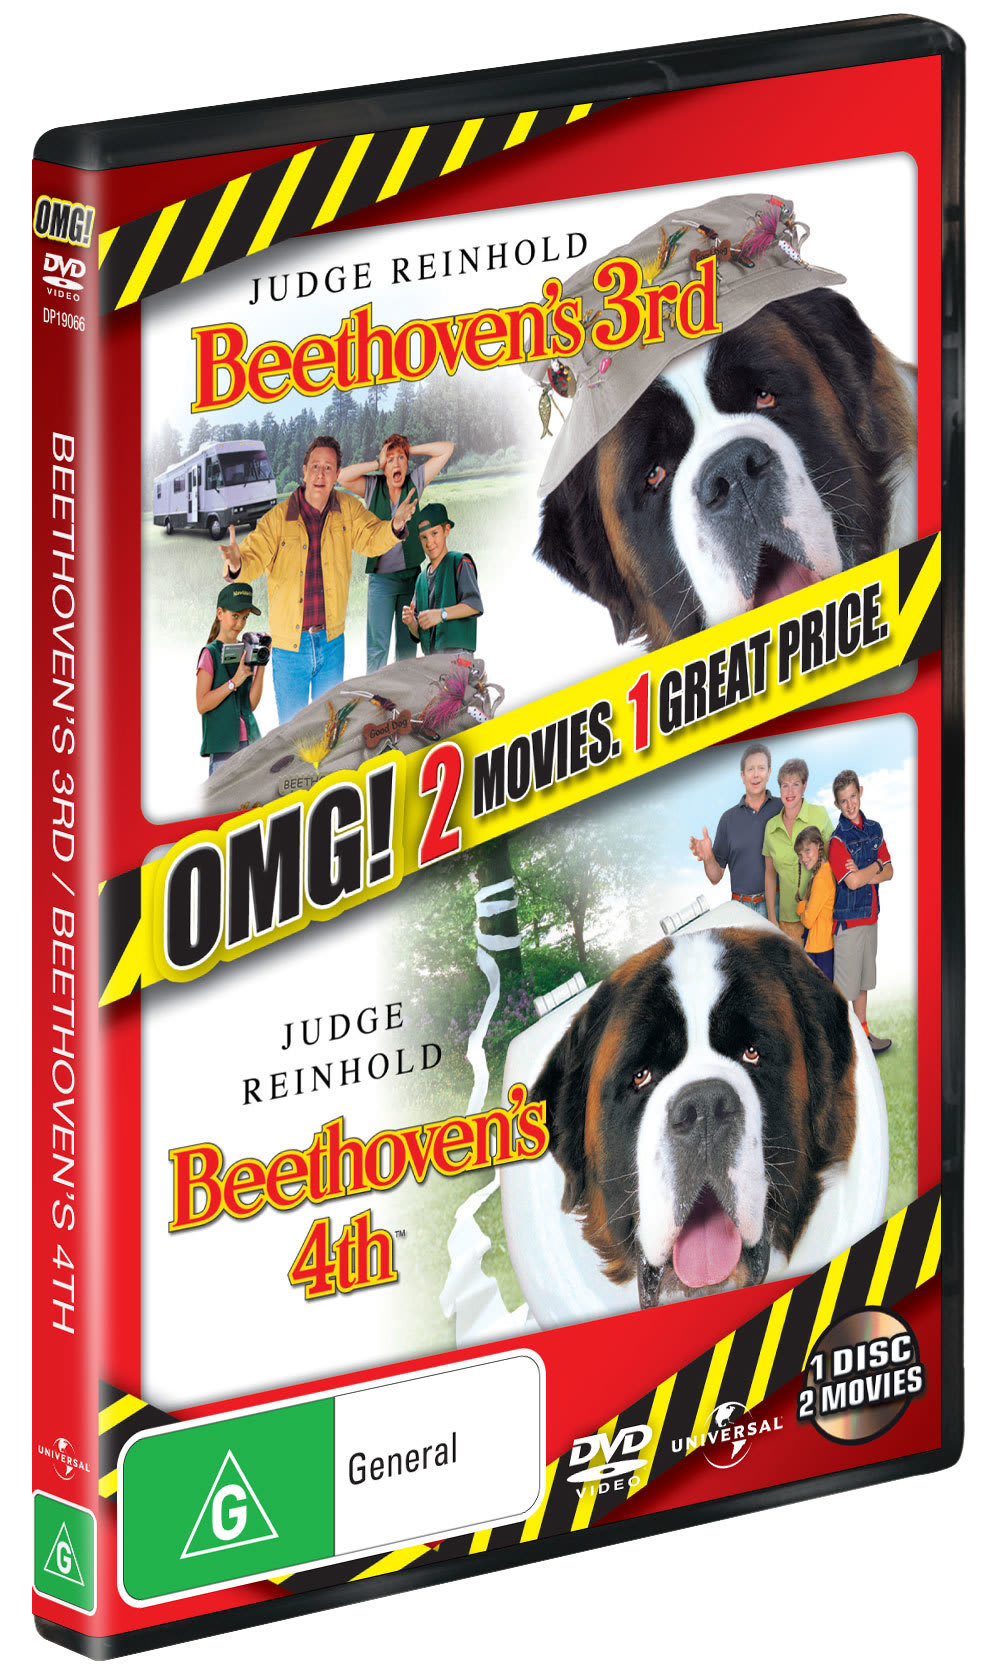 Beethoven's 3rd/Beethoven's 4th [DVD]